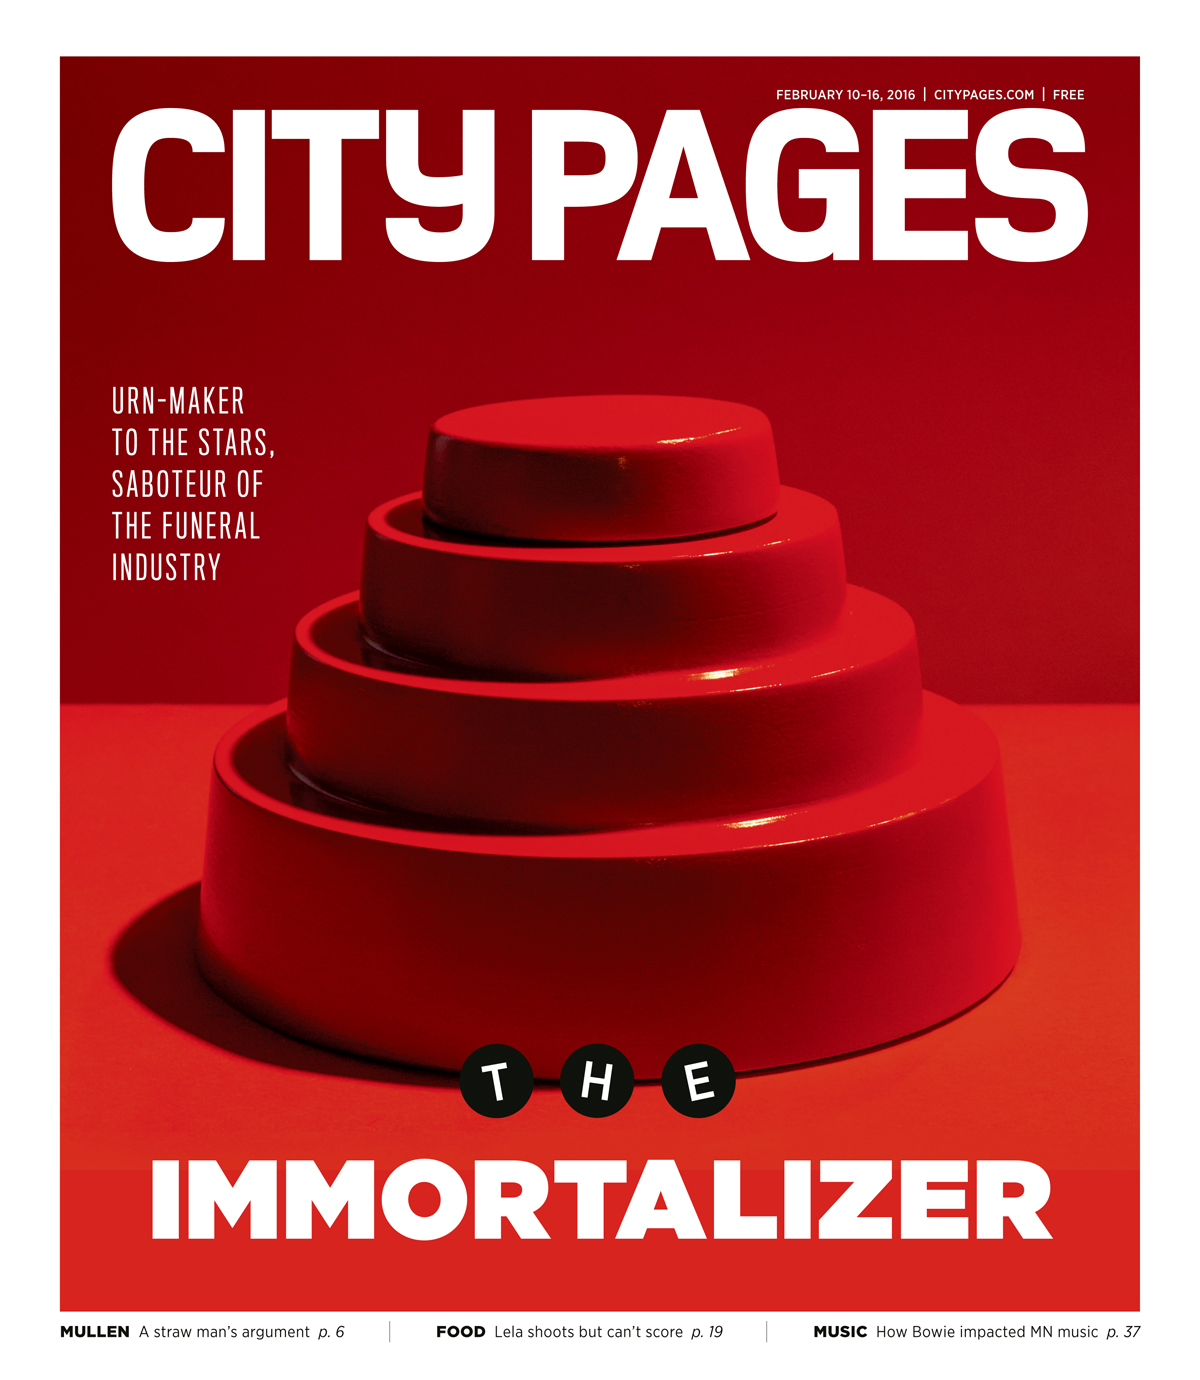 News_021016_TheImmortalizerCover_crColleenGuenther.jpg